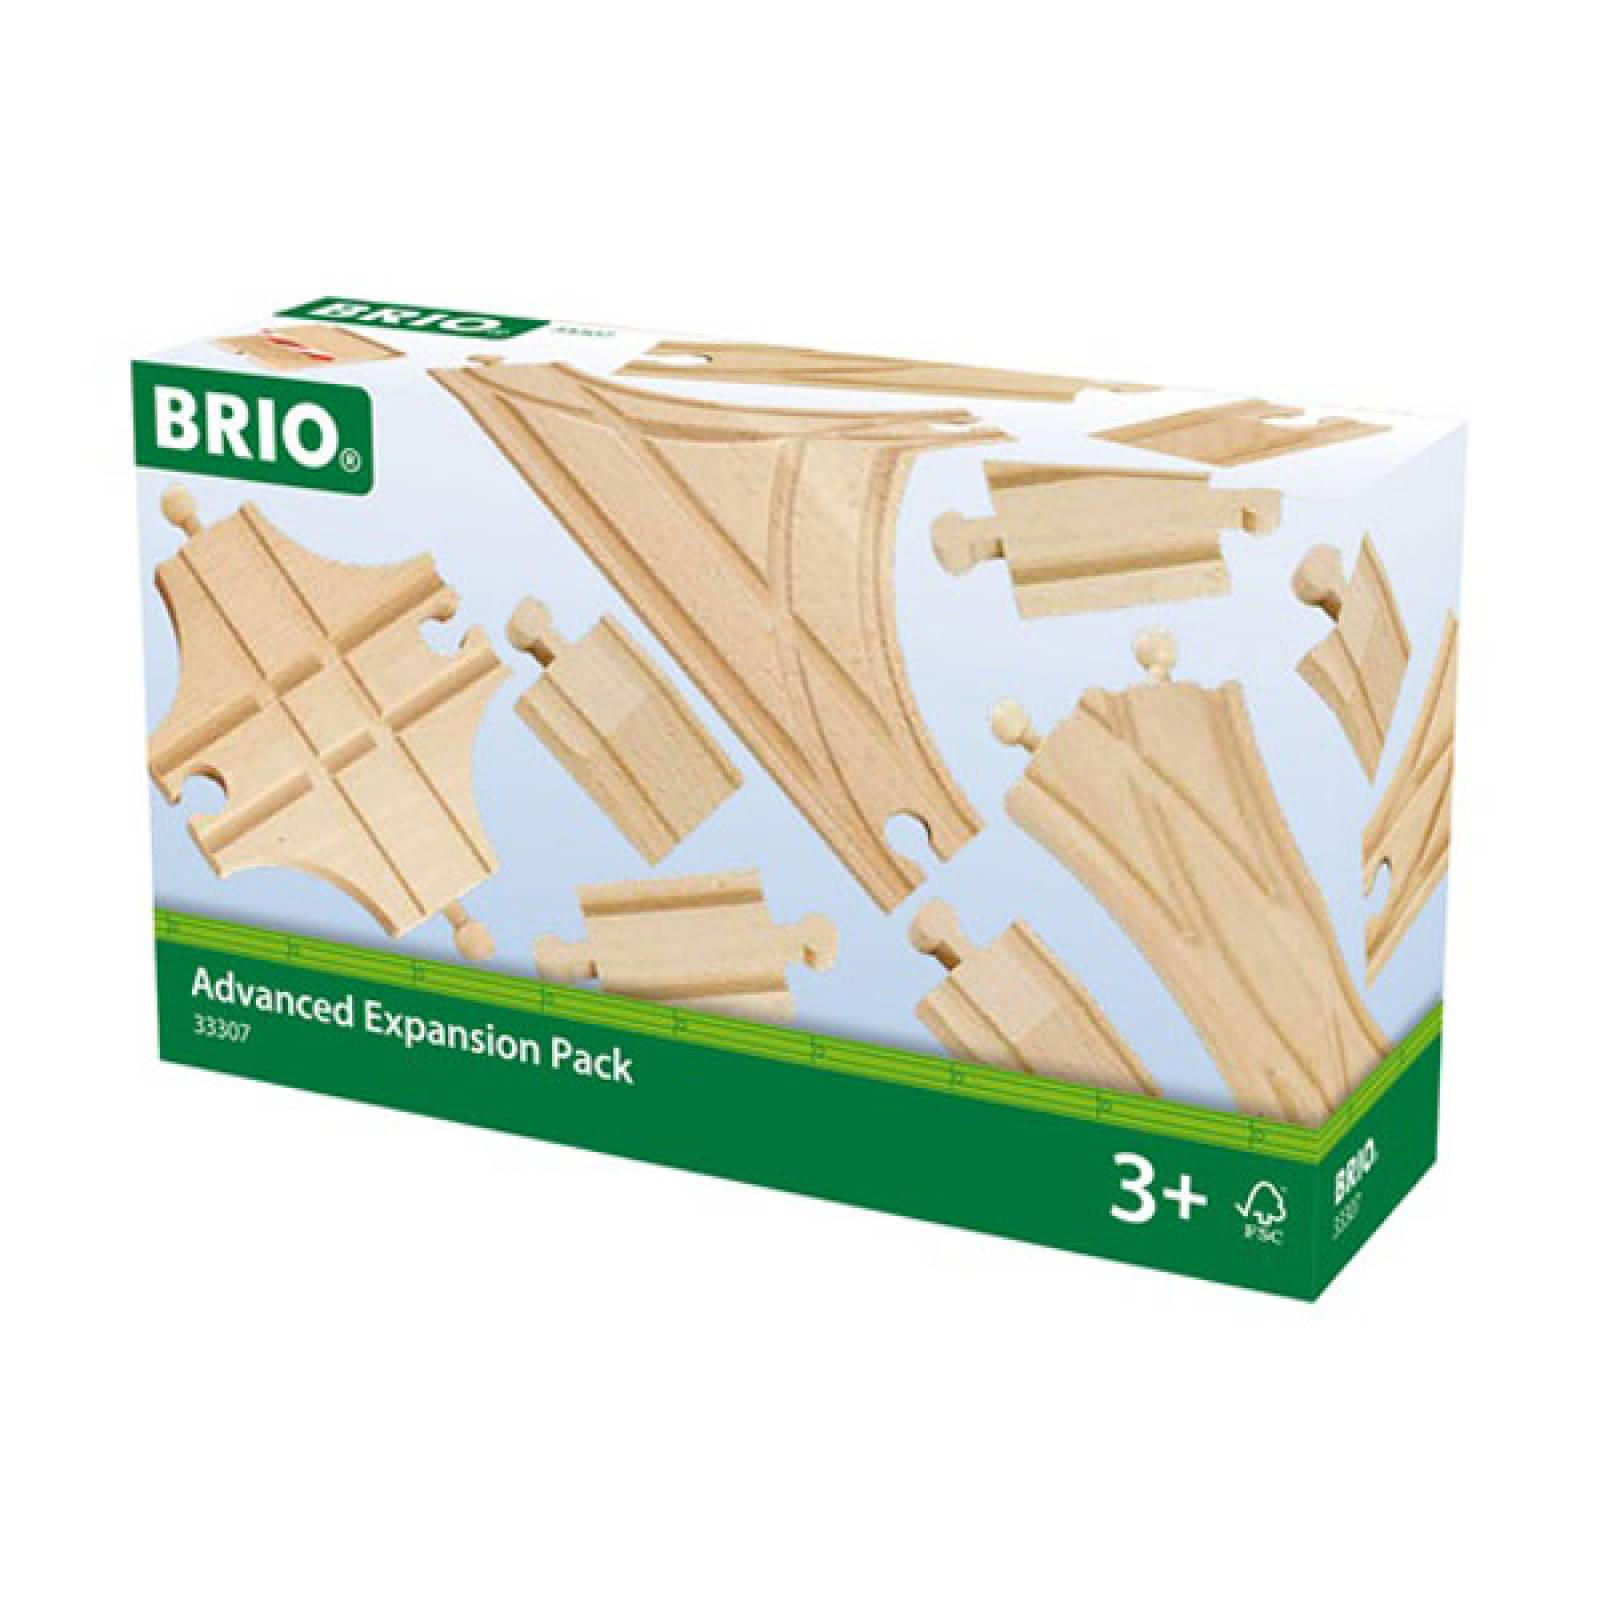 Advanced Expansion Track  BRIO® Wooden Railway Age 3+ thumbnails